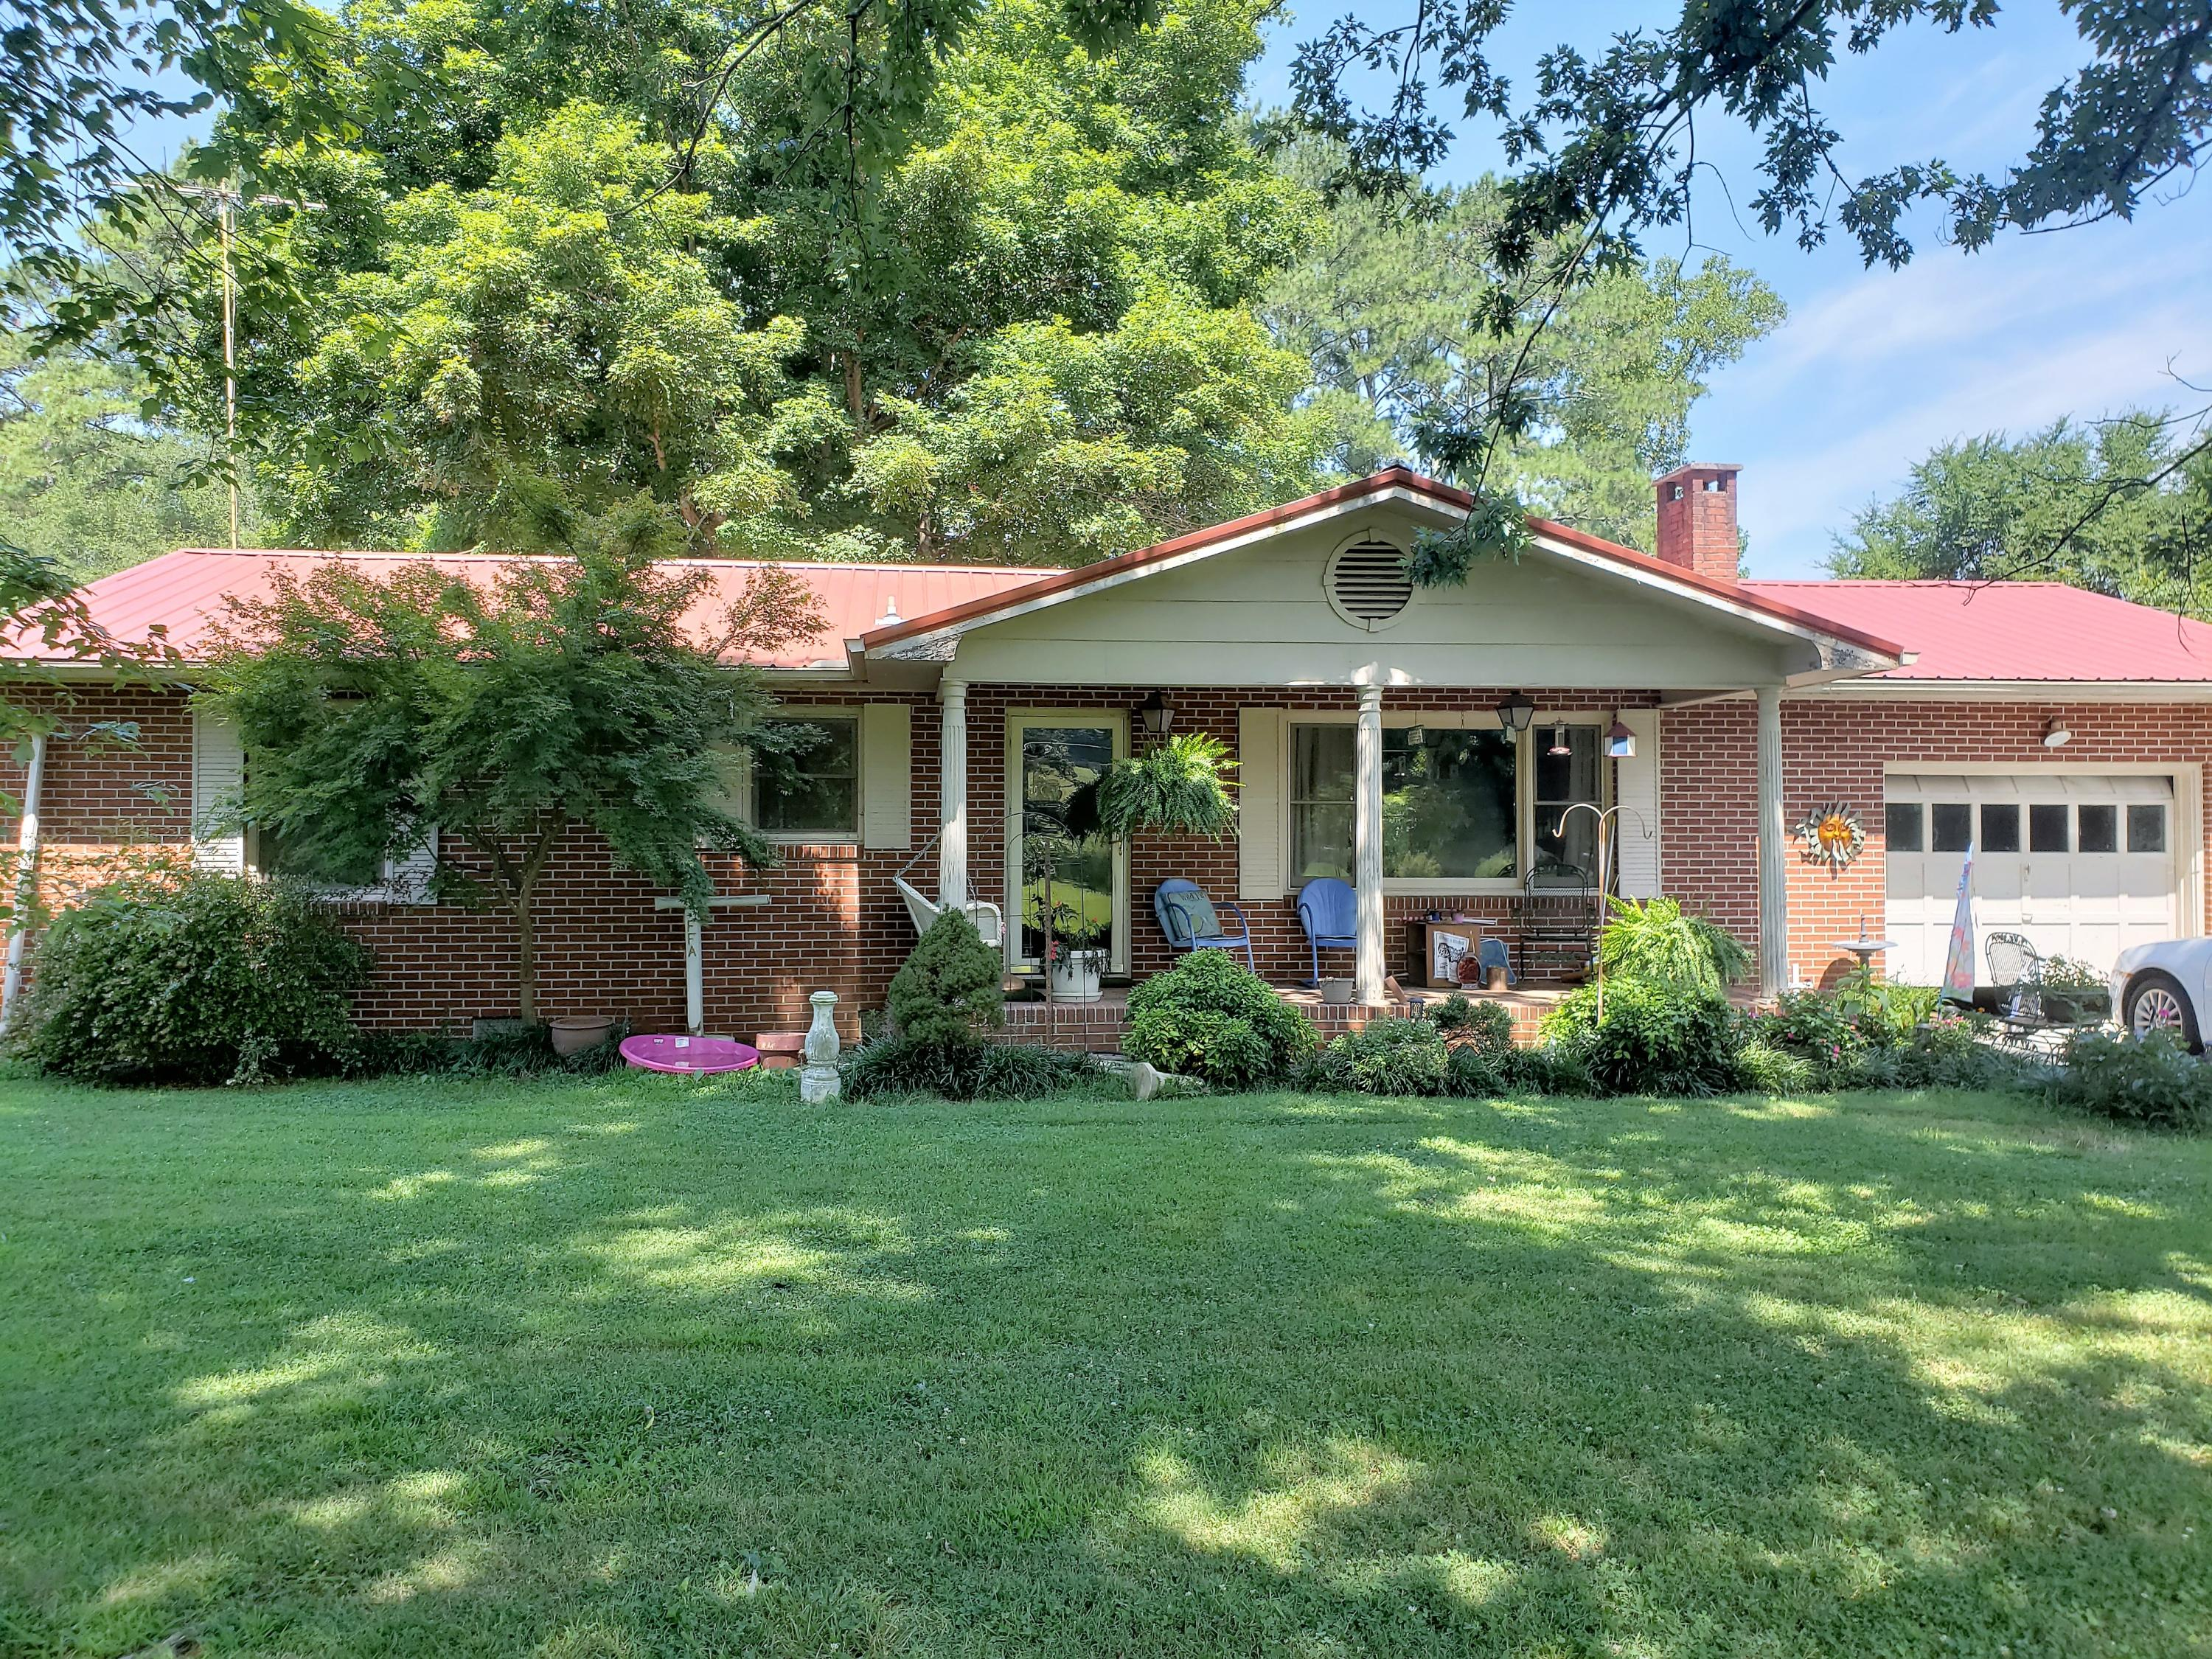 502 Sw Tunnel Hill Rd, Cleveland, TN 37311